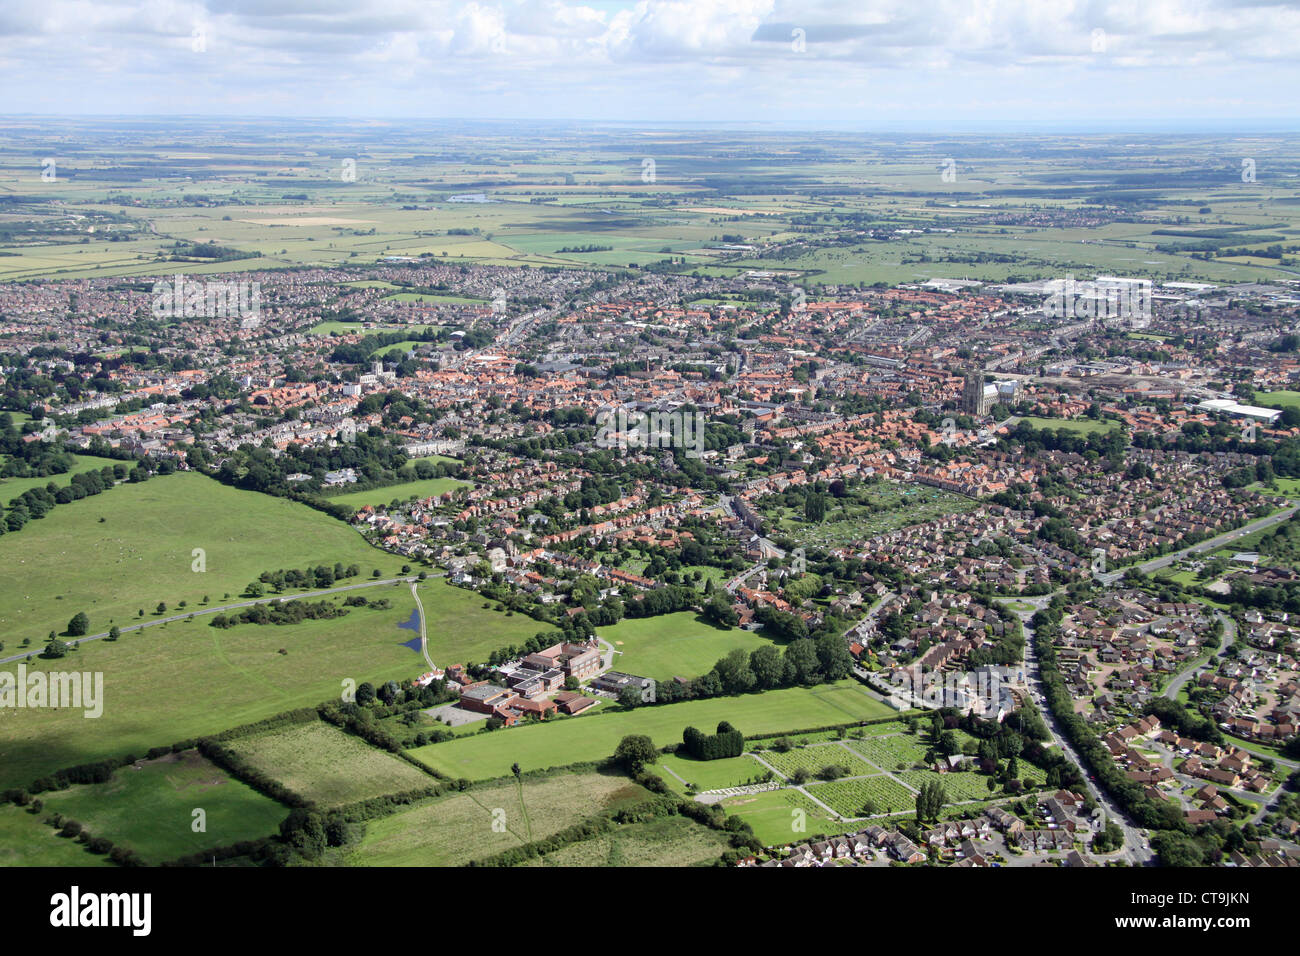 aerial view of Beverley town, East Yorkshire viewed from the south west - Stock Image